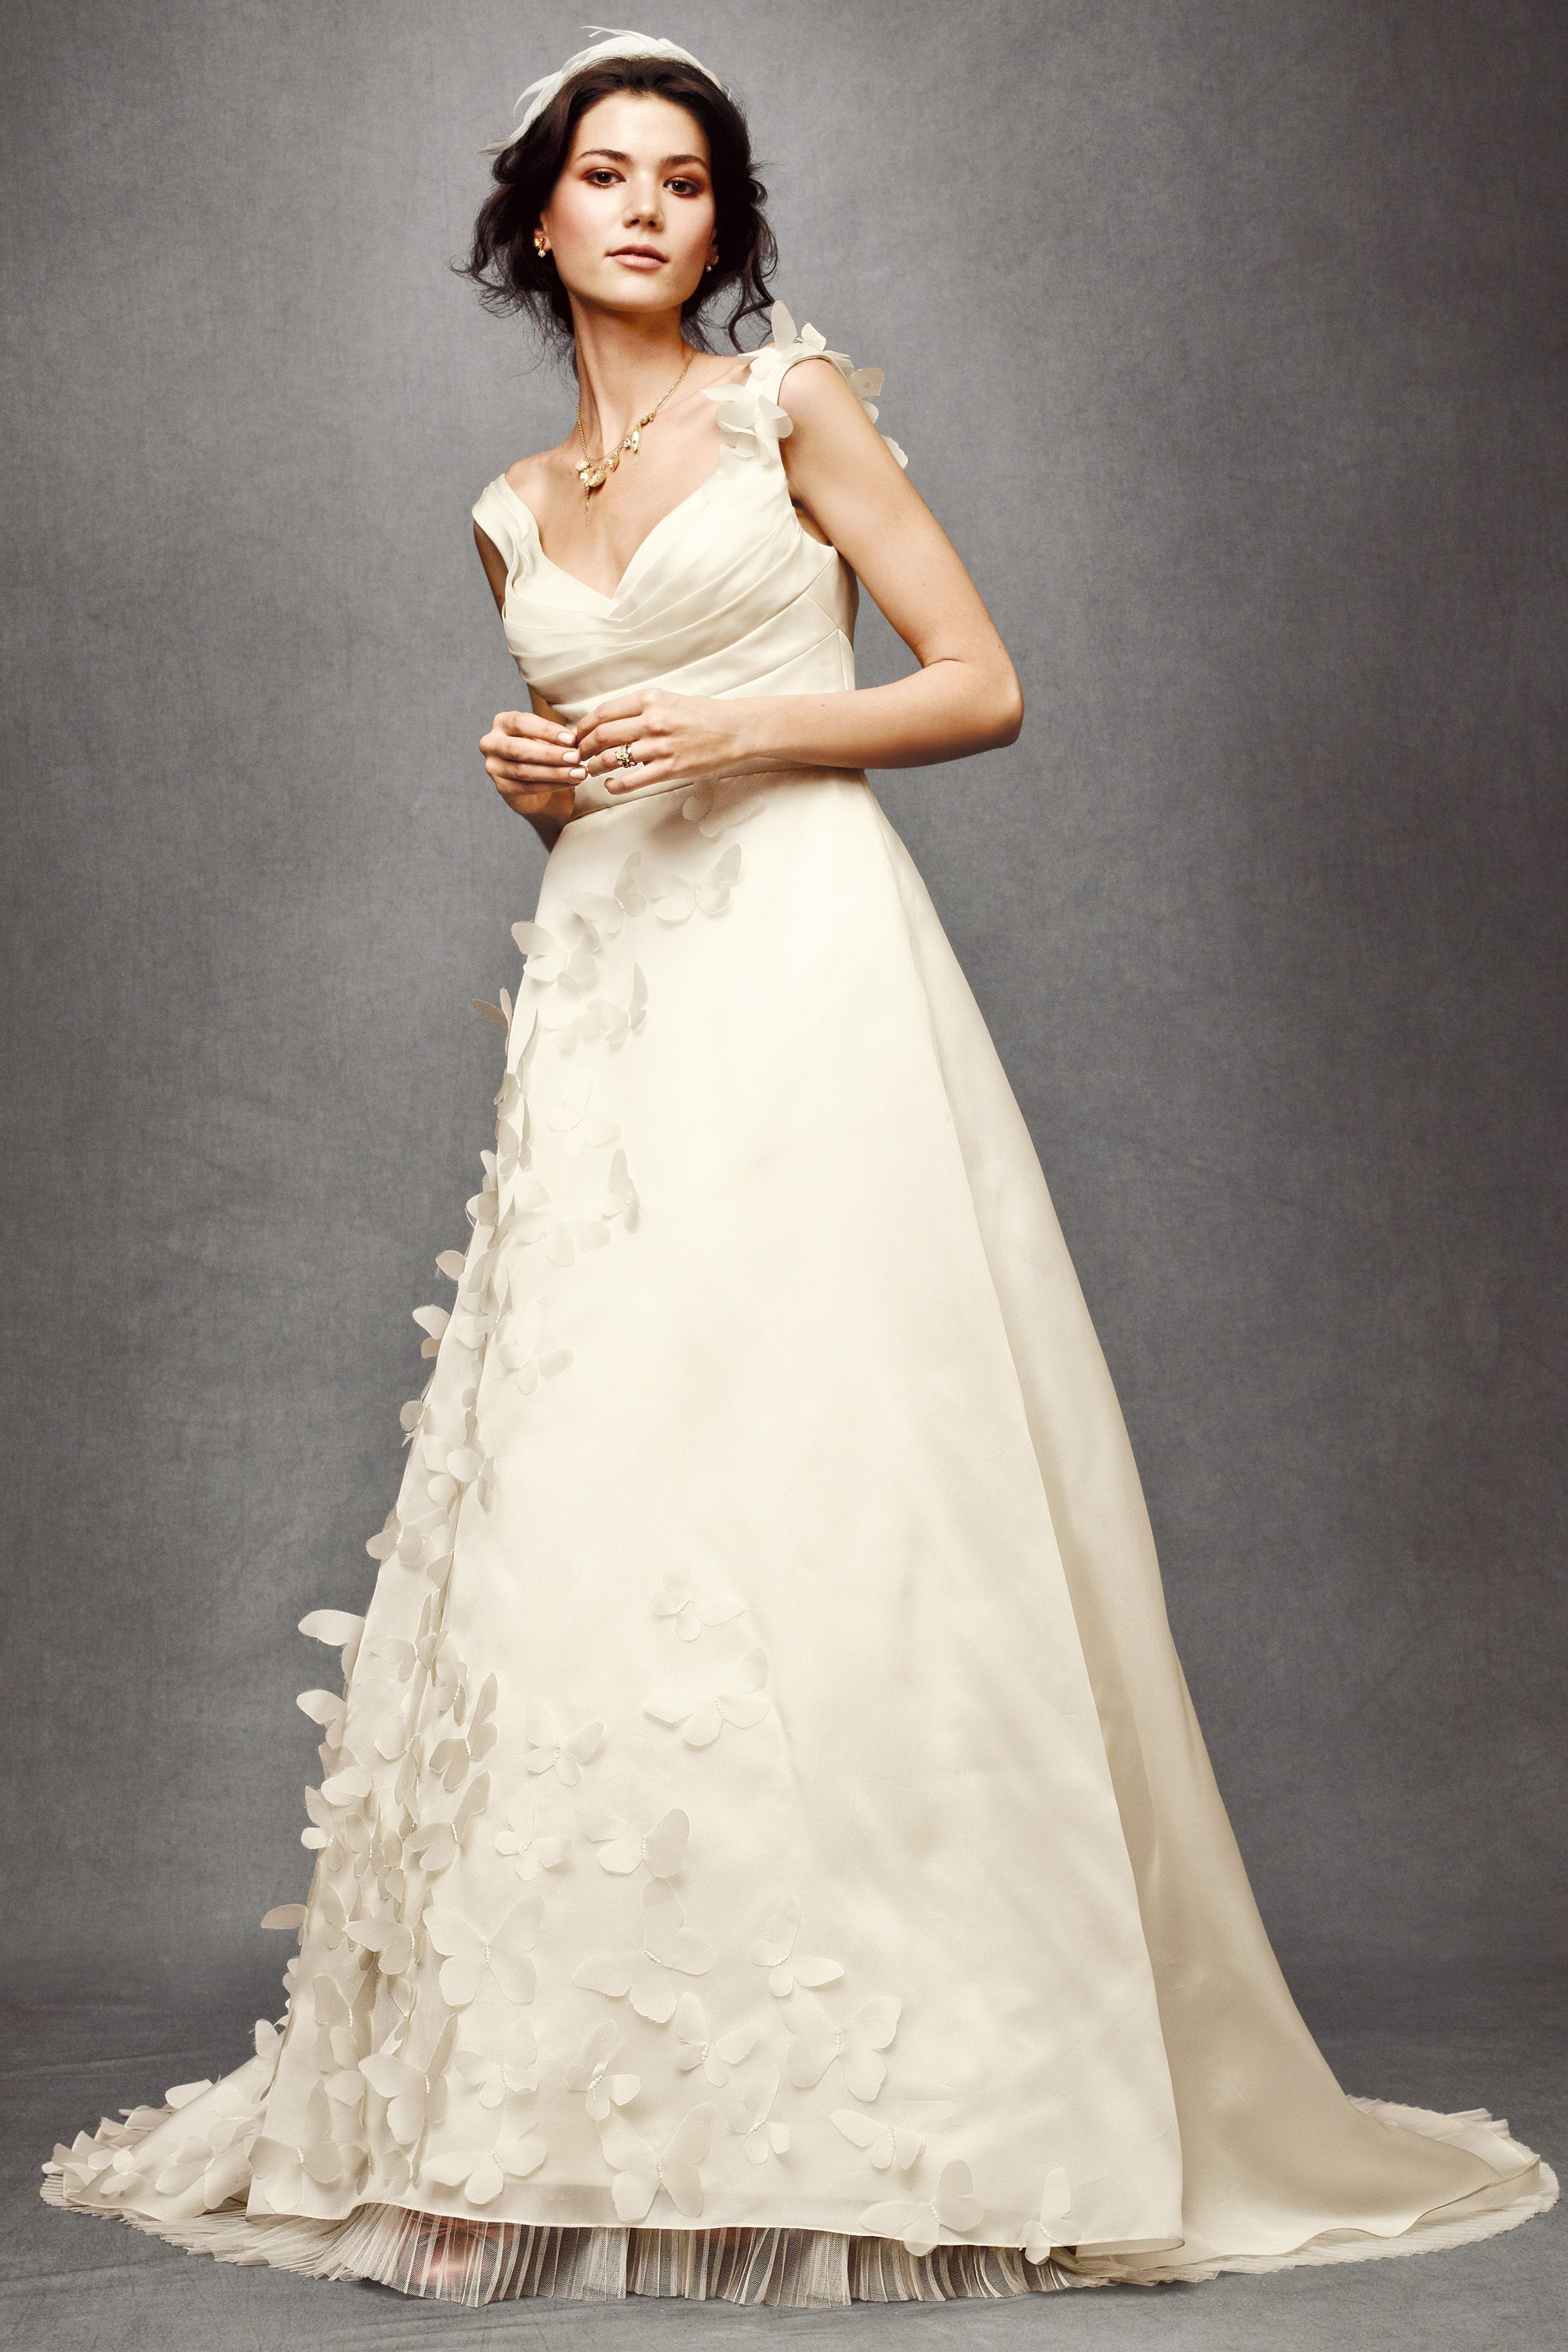 Ethereal monarch gown from anthropologie. Butterflies! | Bridal ...